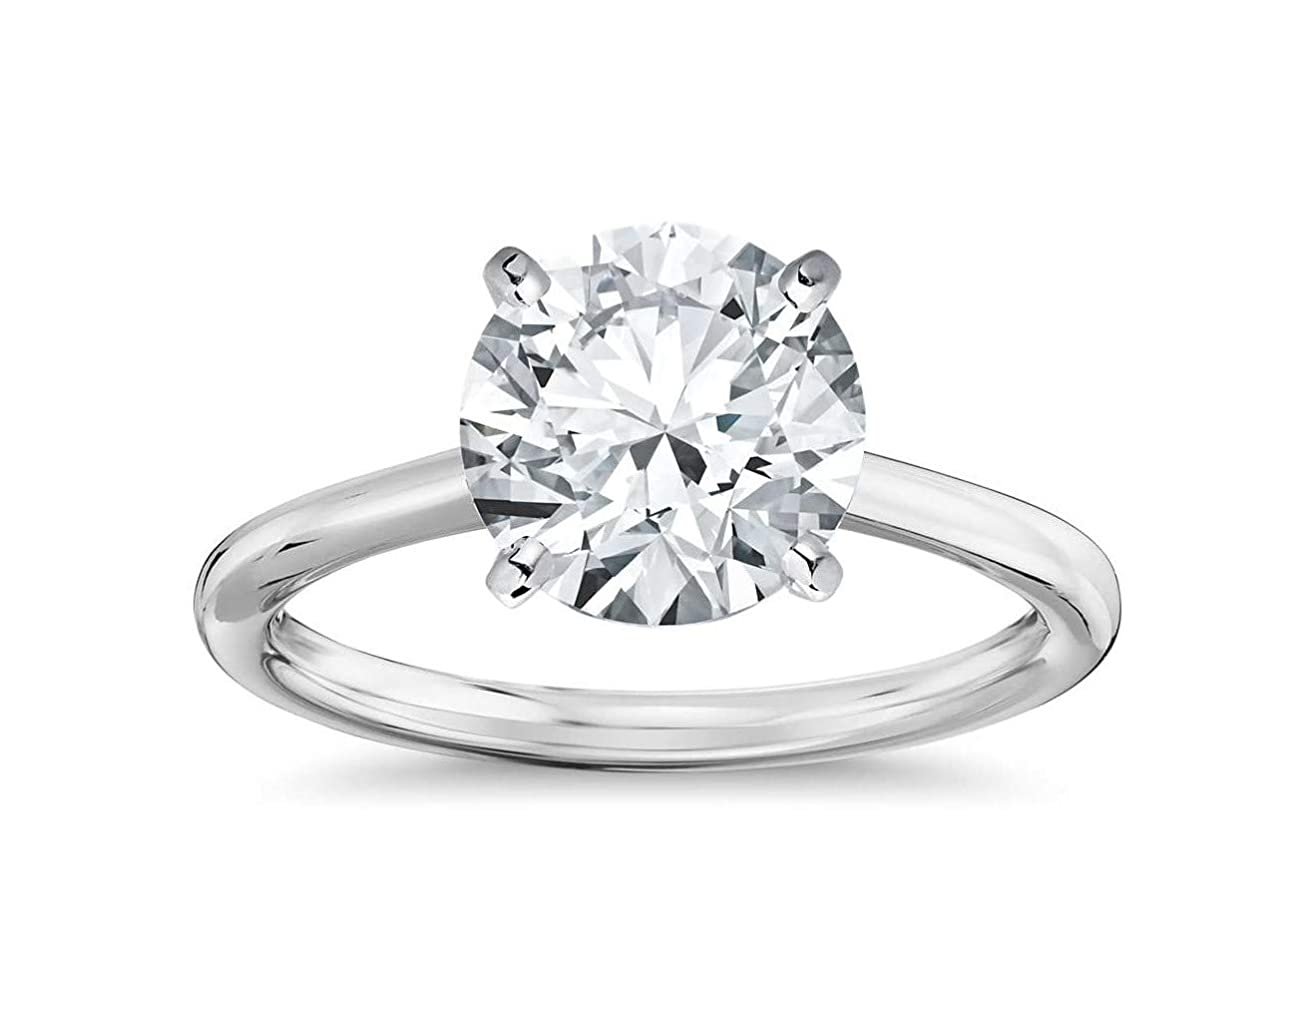 14K Solid Gold 2.0 Carat Solitaire CZ Engagement Ring